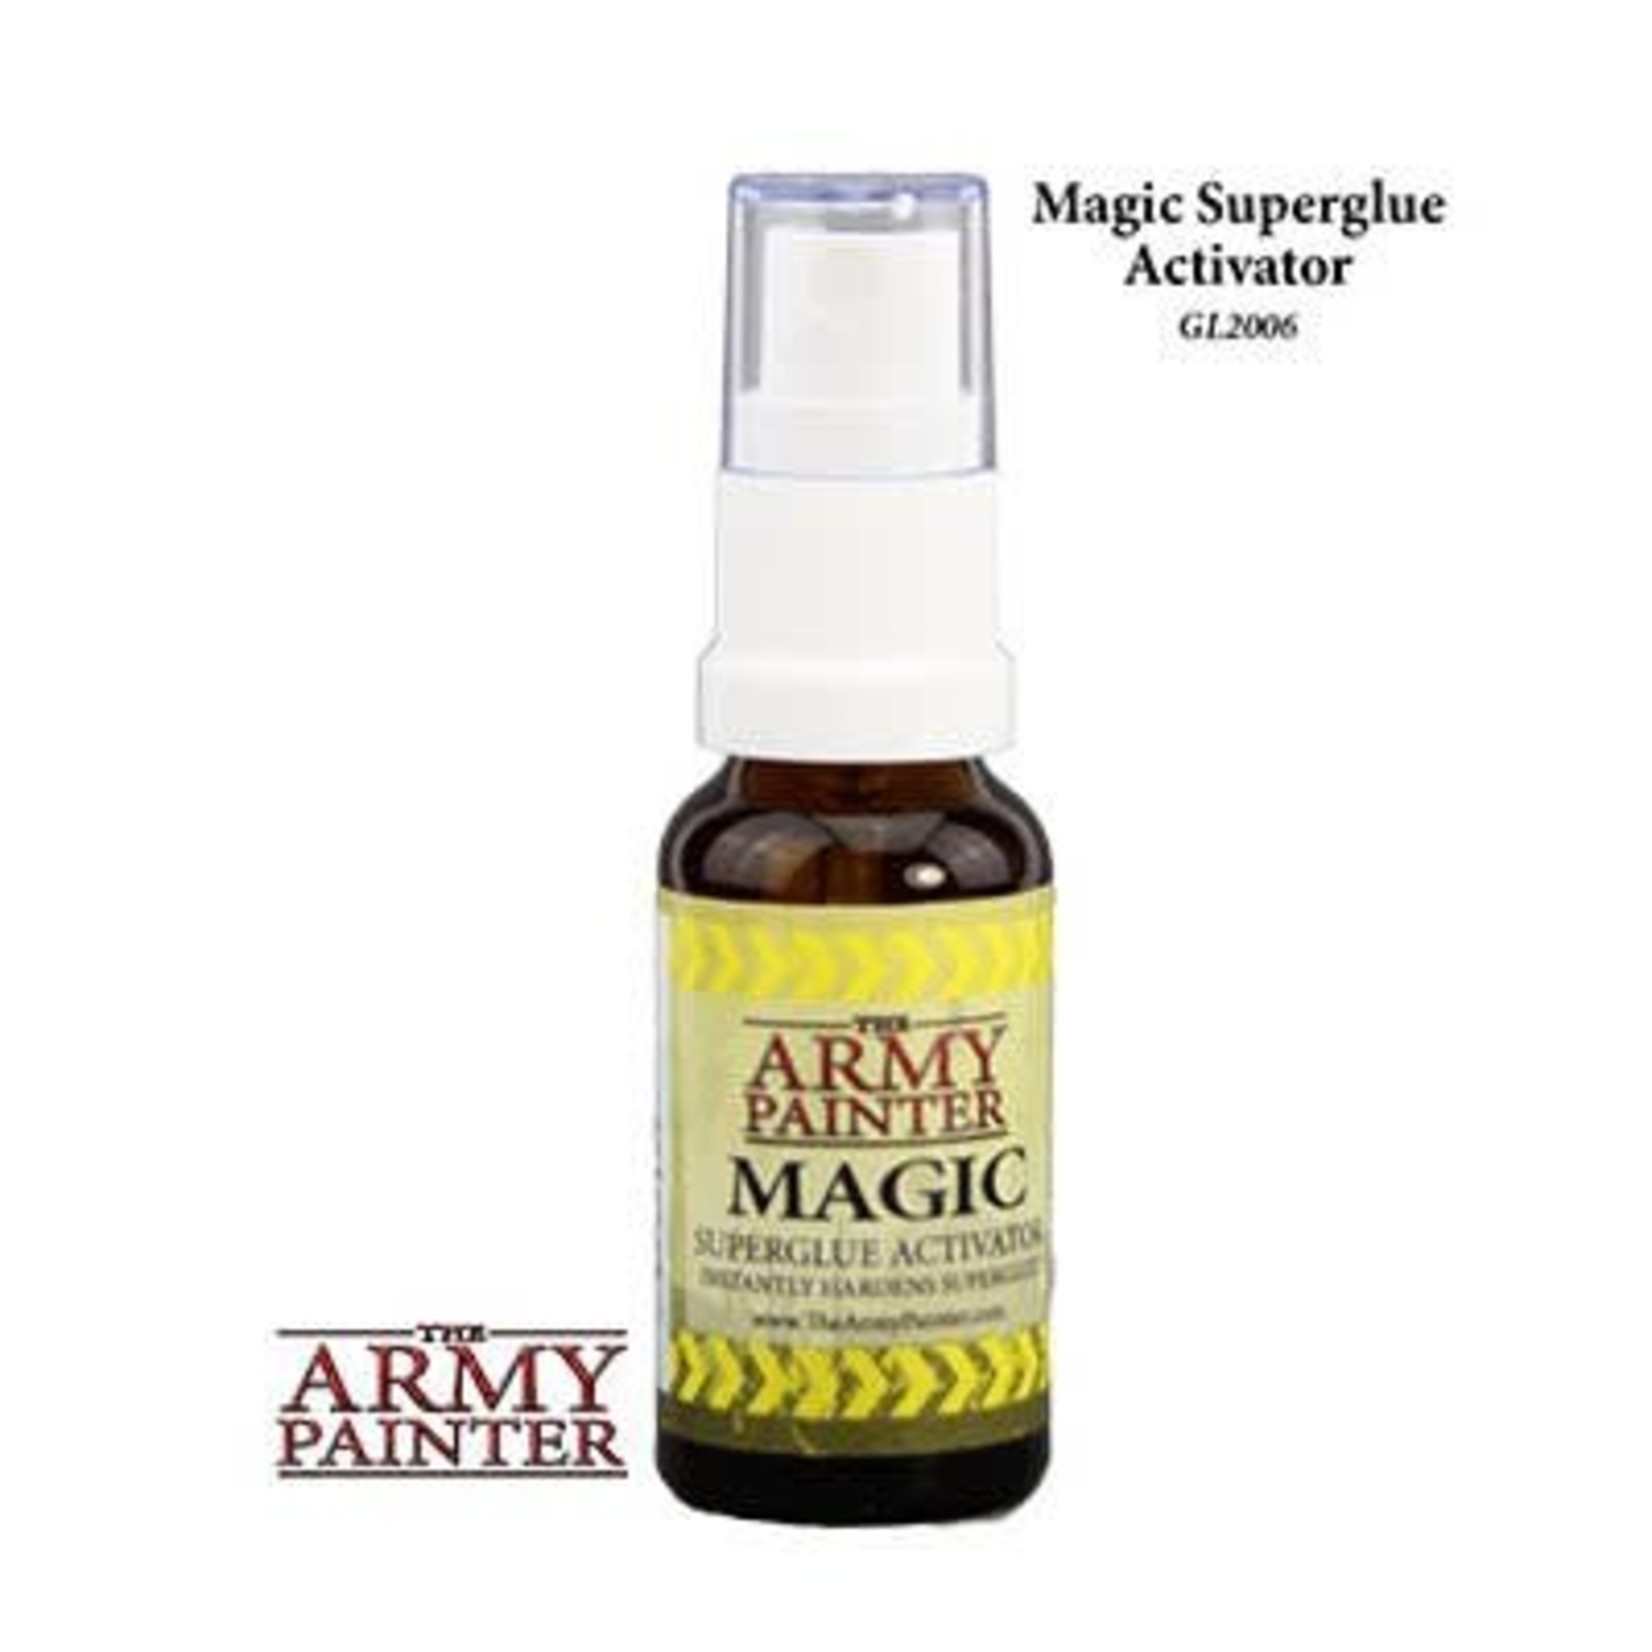 The Army Painter The Army Painter: Miniature Super Glue Activator